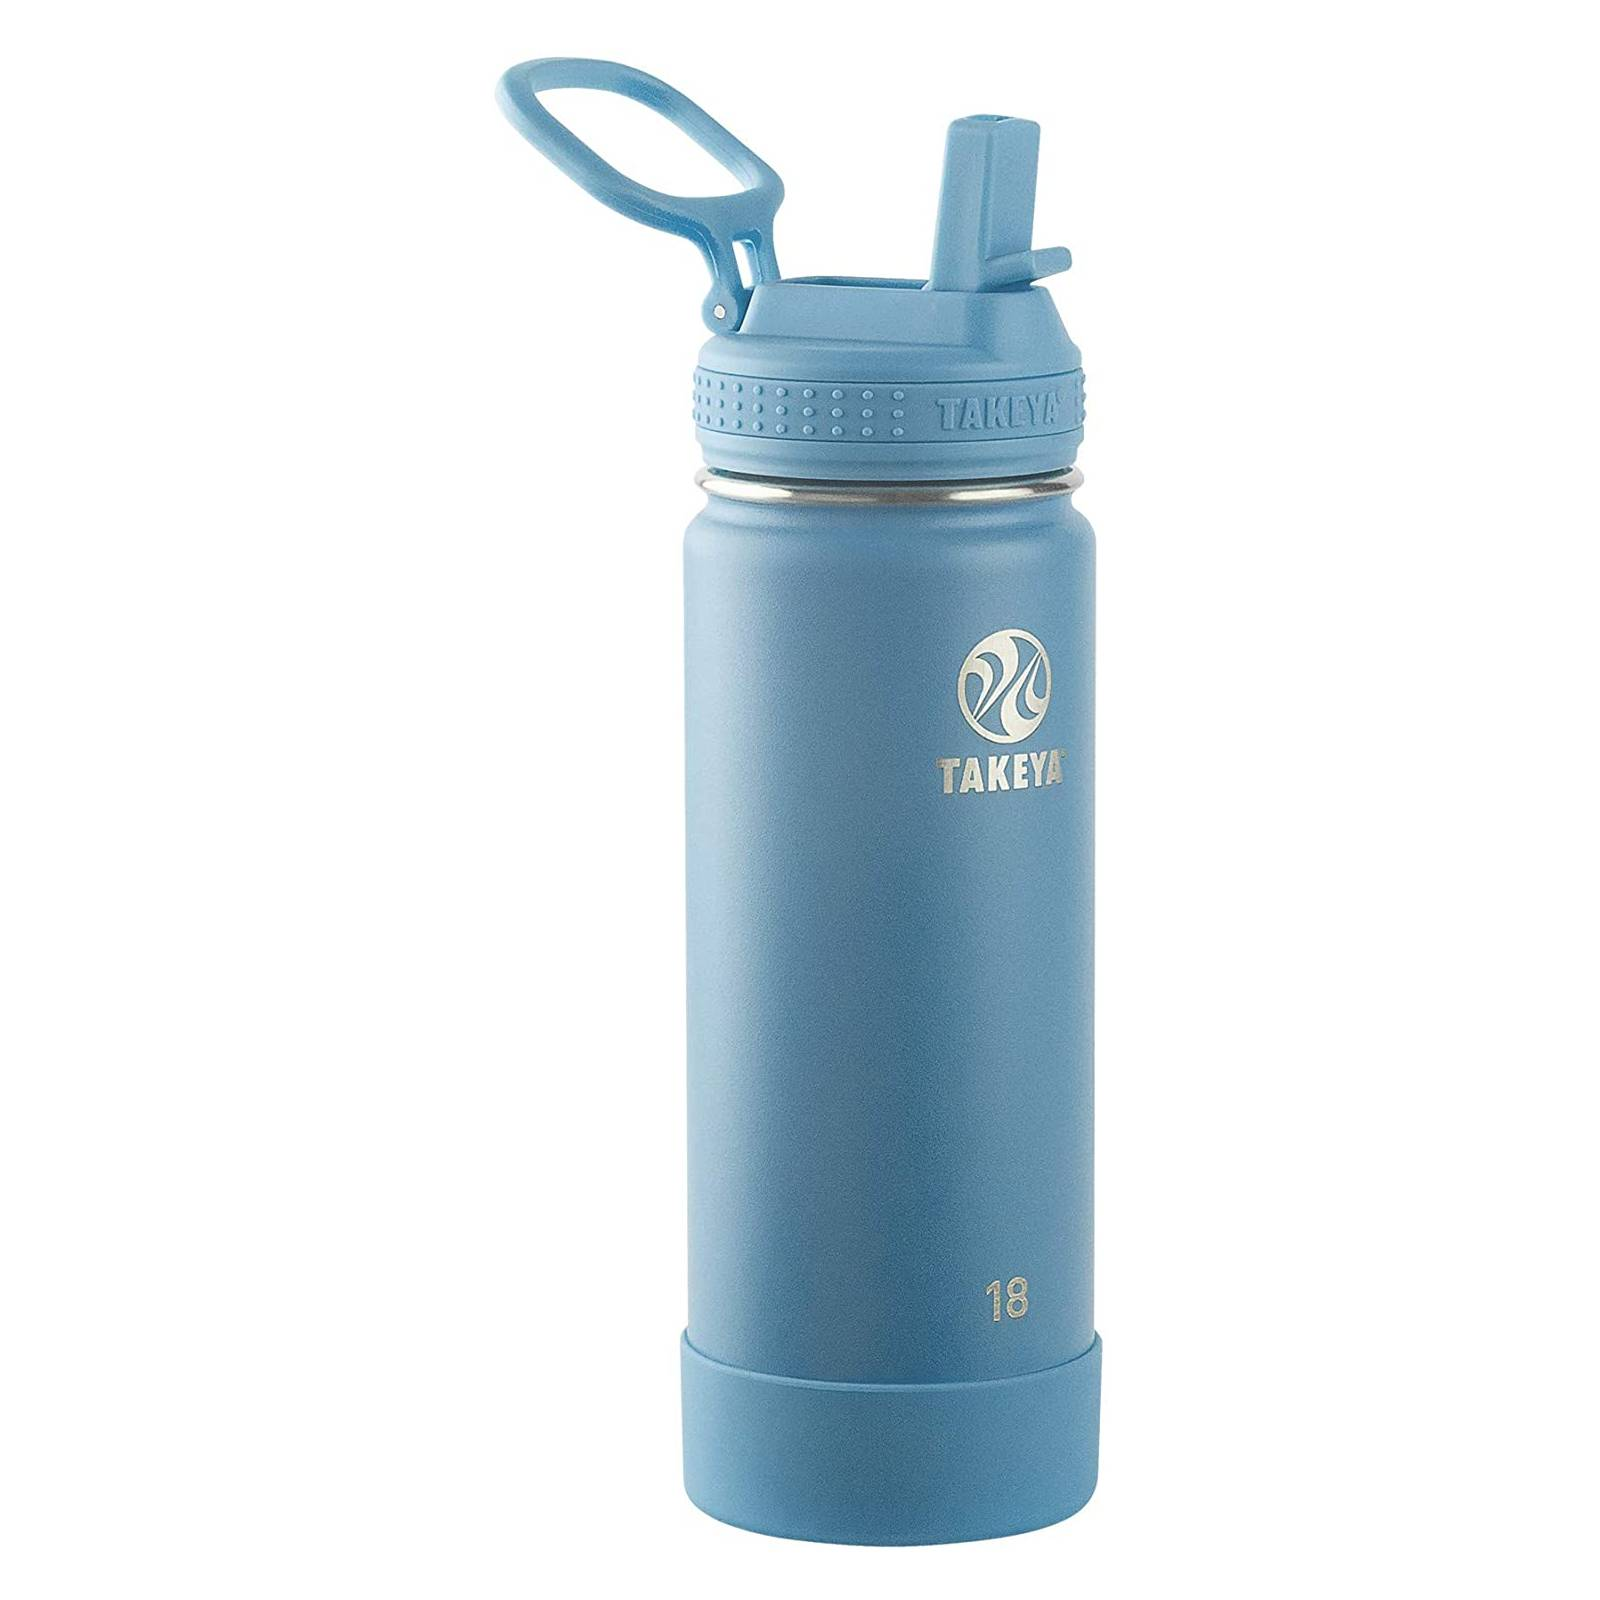 Takeya Actives Insulated Water Bottle With Straw Lid Bluestone